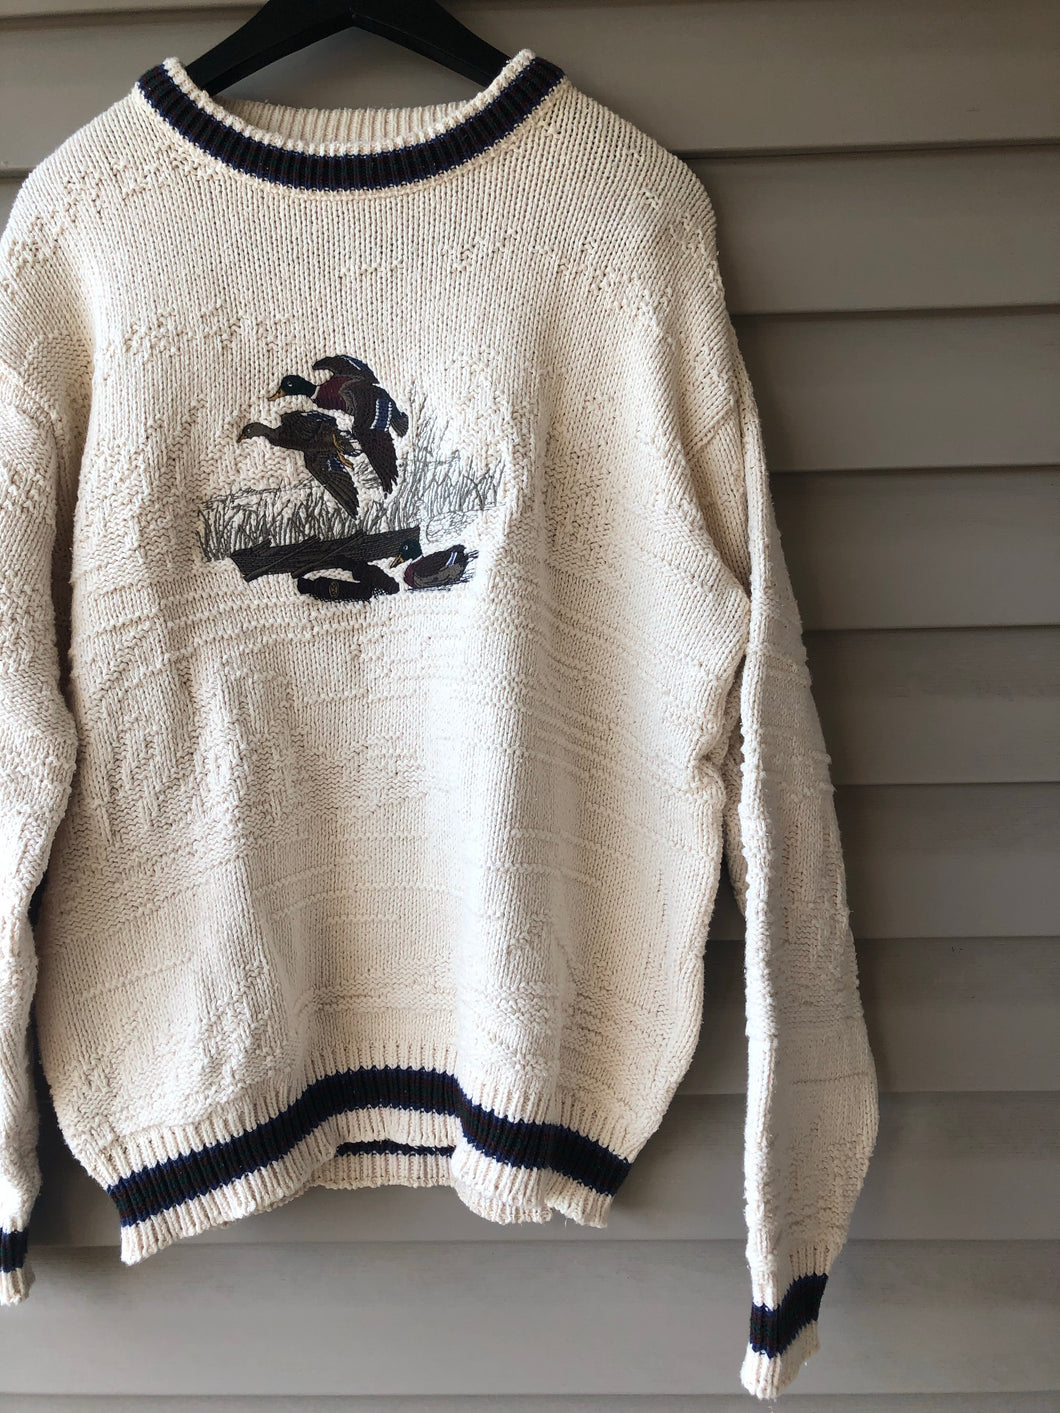 Duck Sweater Set (M/L, L/XL)